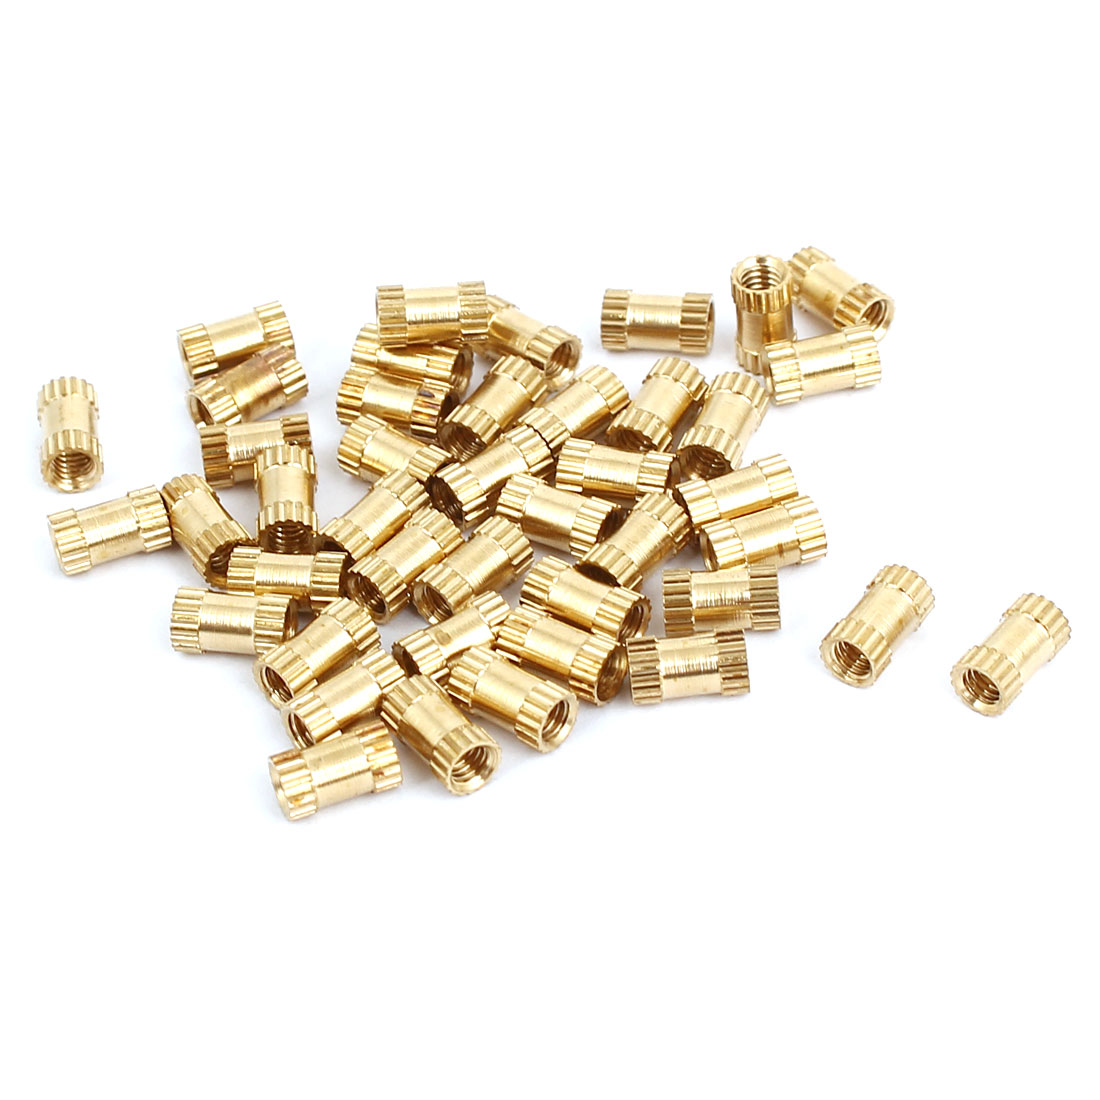 M2.5x6mmx3.5mm Female Thread Brass Knurled Insert Embedded Nuts Gold Tone 40pcs